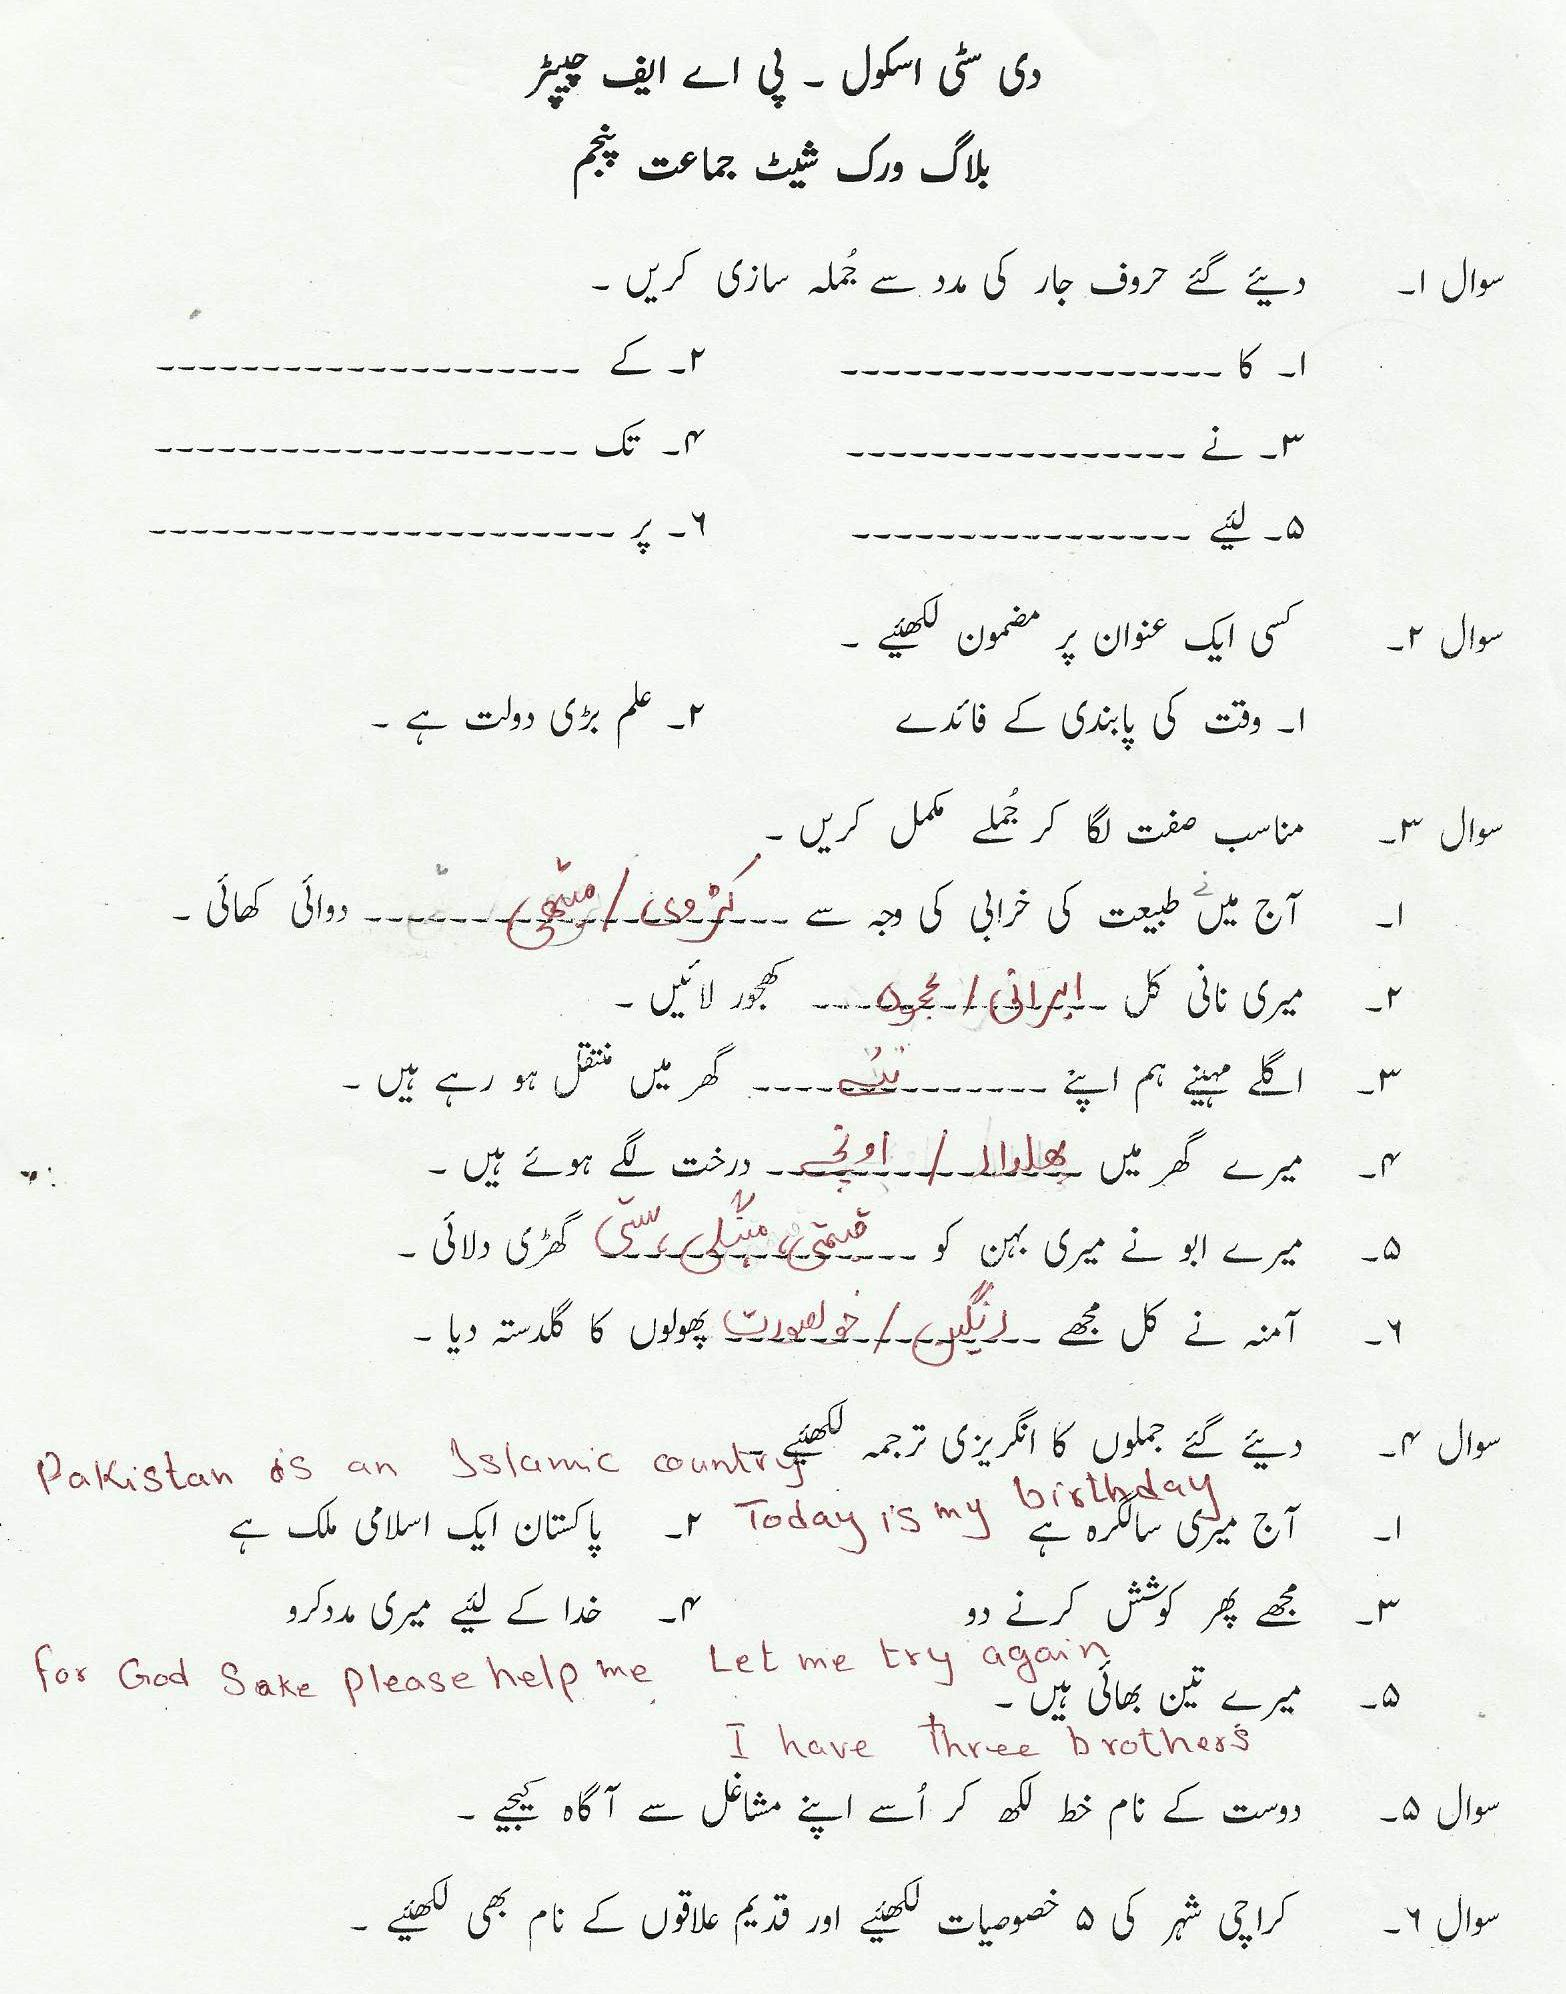 Essay topics for grade 5 in urdu